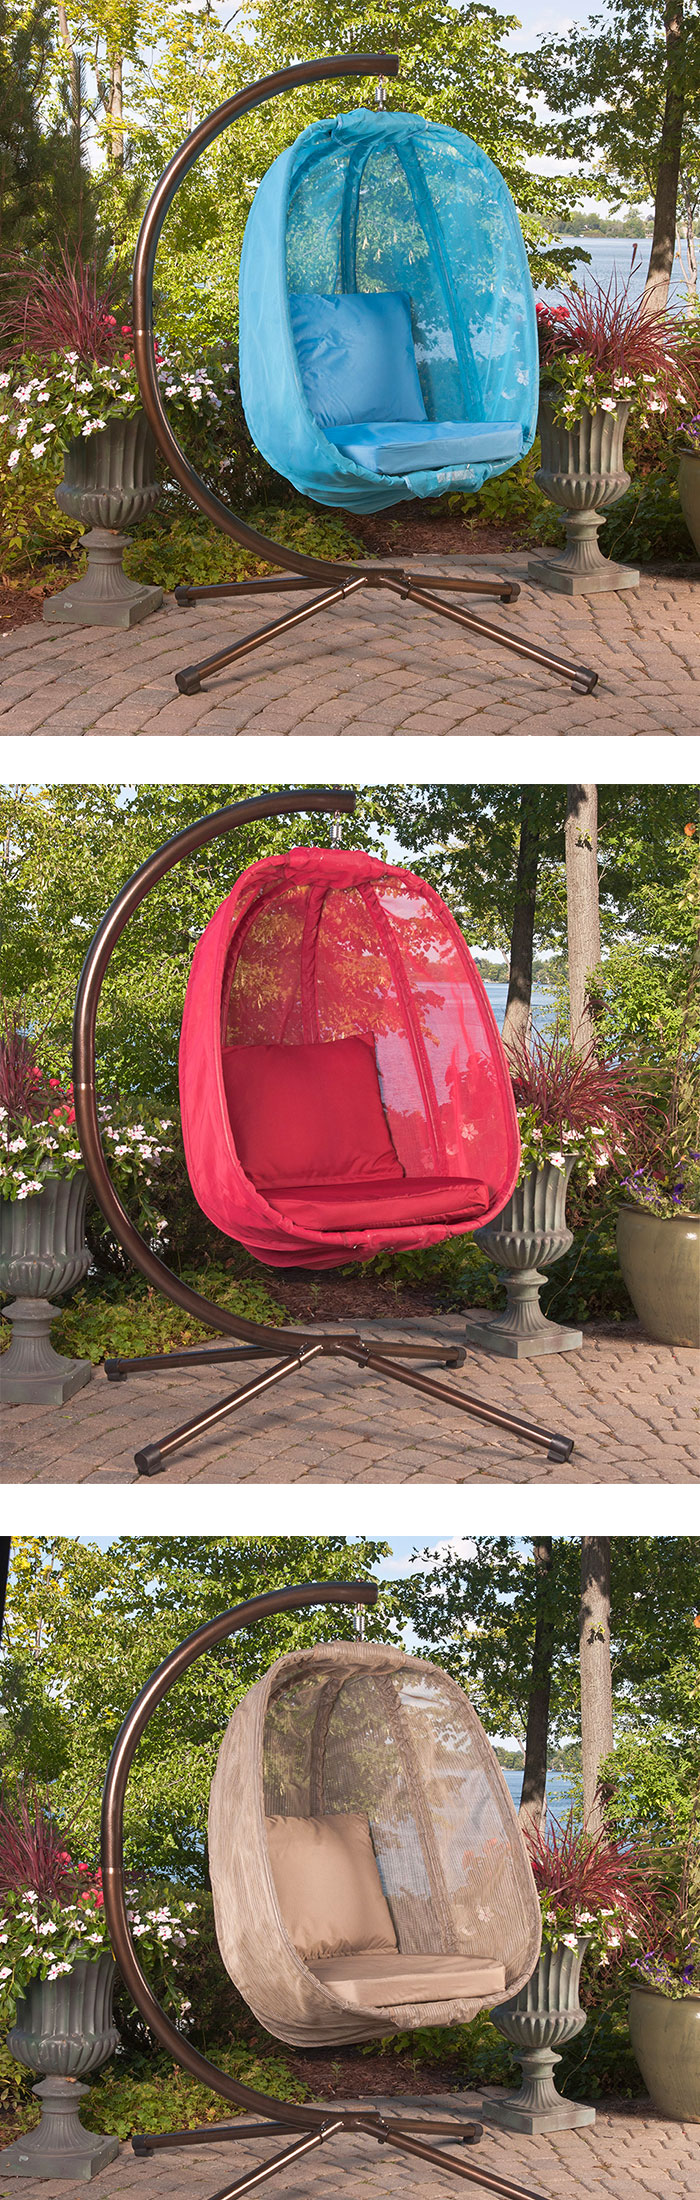 Who wants this contemporary egg chair for their backyard?   The best part is that it comes with a stand!  https://hammocktown.com/collections/egg-chairs